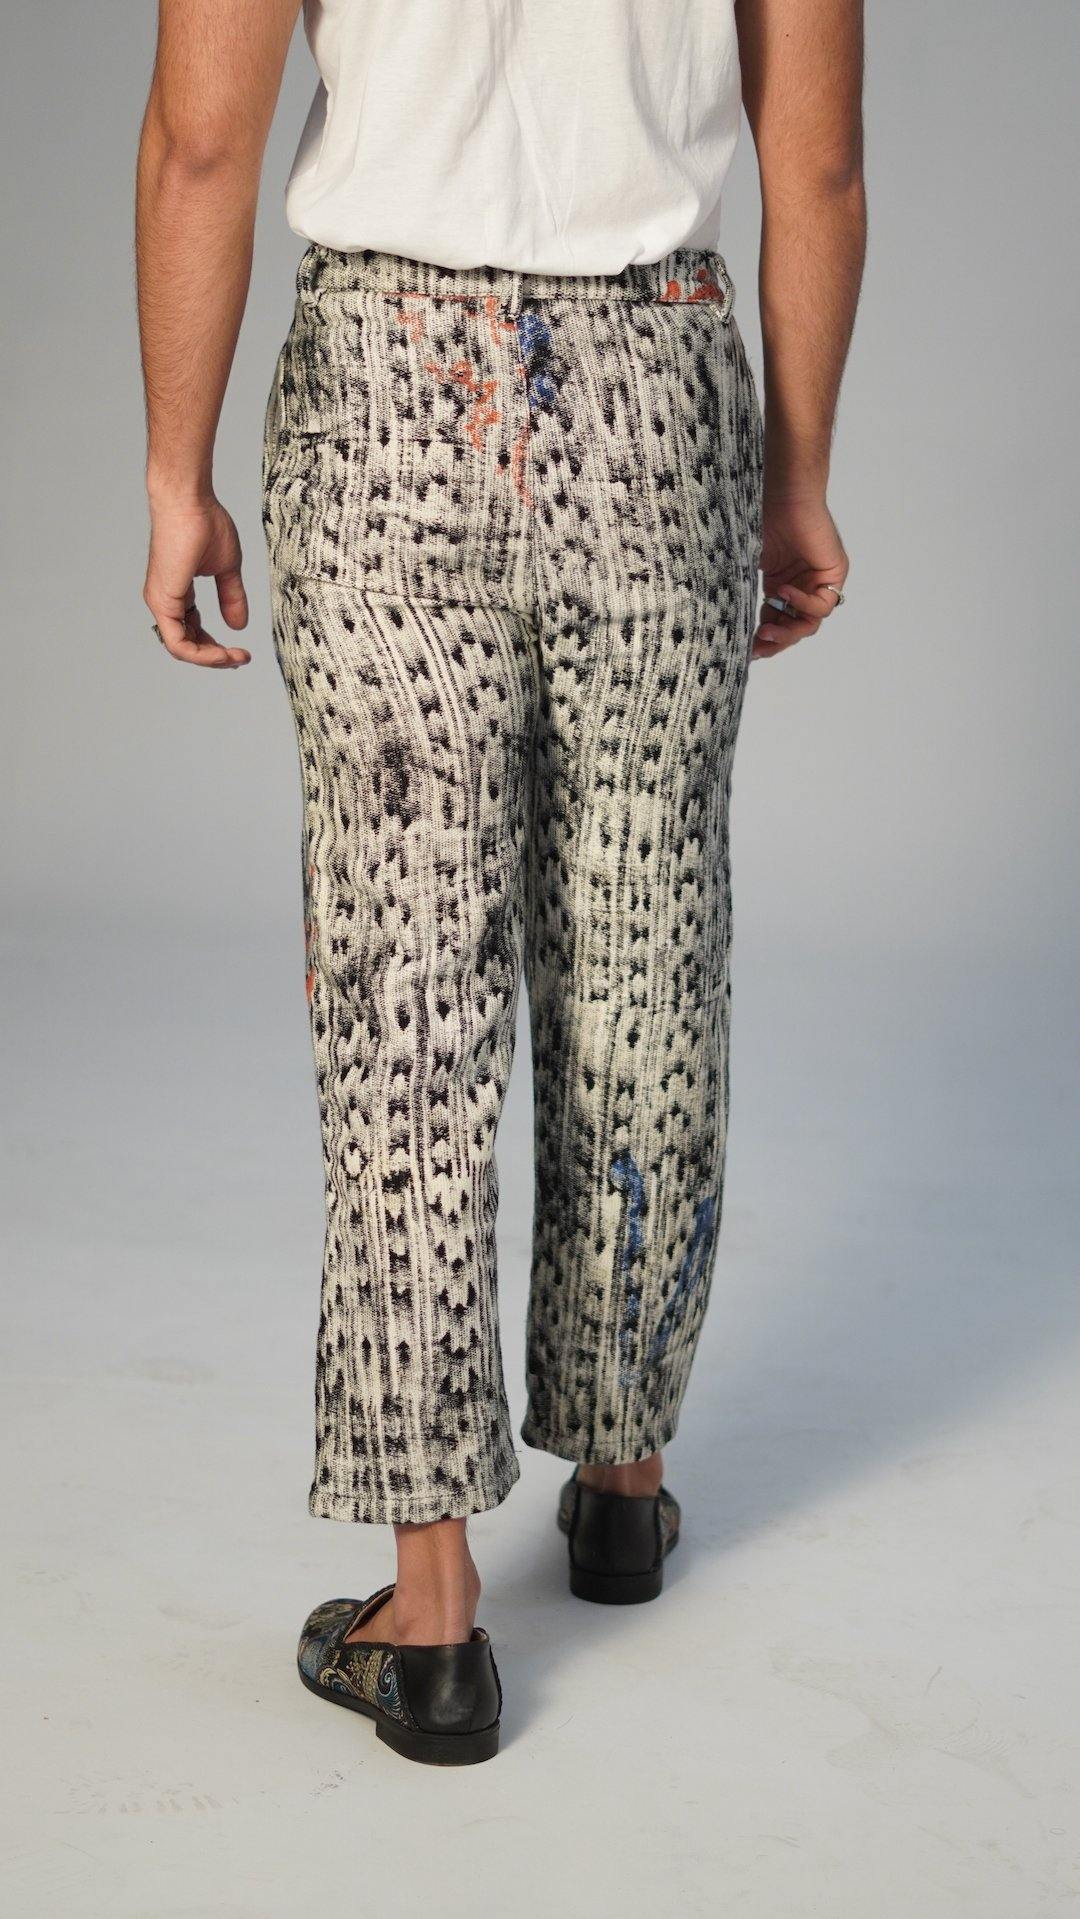 Motion Blur Block Print Hand-Woven Pant